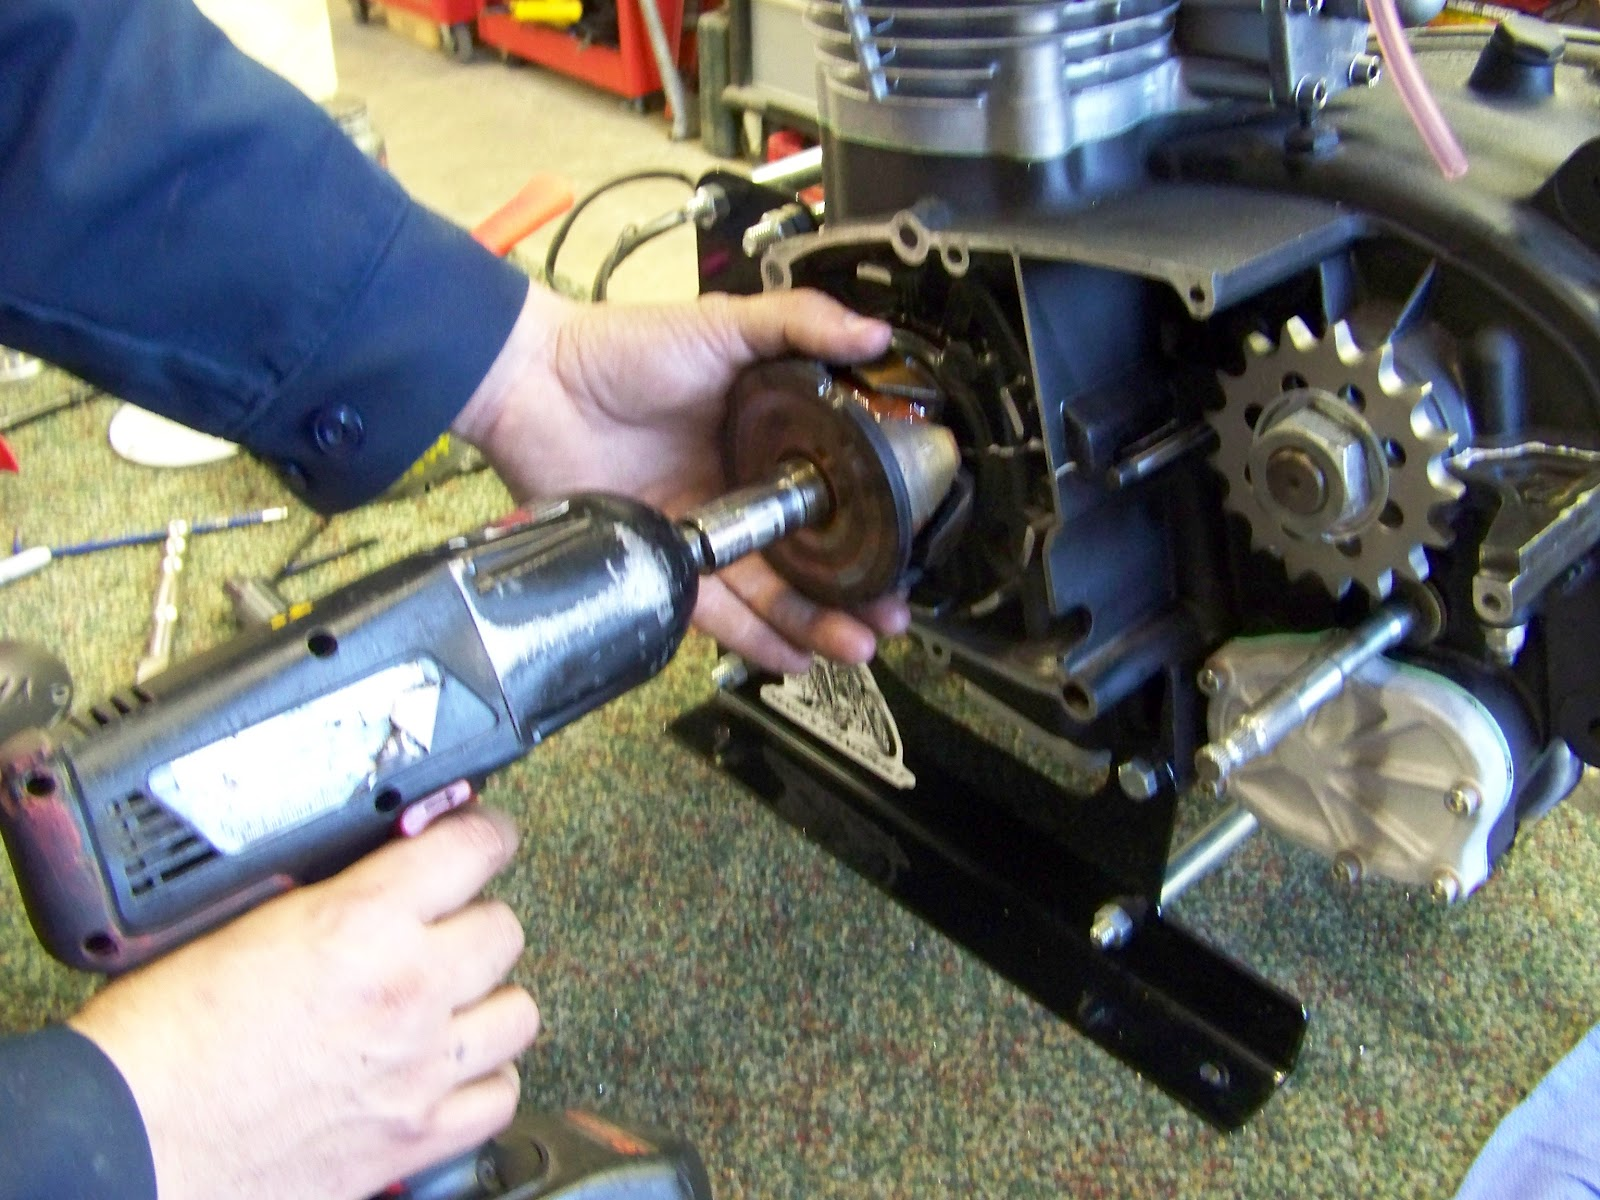 How To Install Your Hughs Handbuilt Pma System On Xs650 1980 Cdi Wiring Diagram Now Thread The Rotor Puller Oem Charging Or Use A 2 Jaw If You Like Arent Keeping This Part Anyhow Be Careful Not Damage